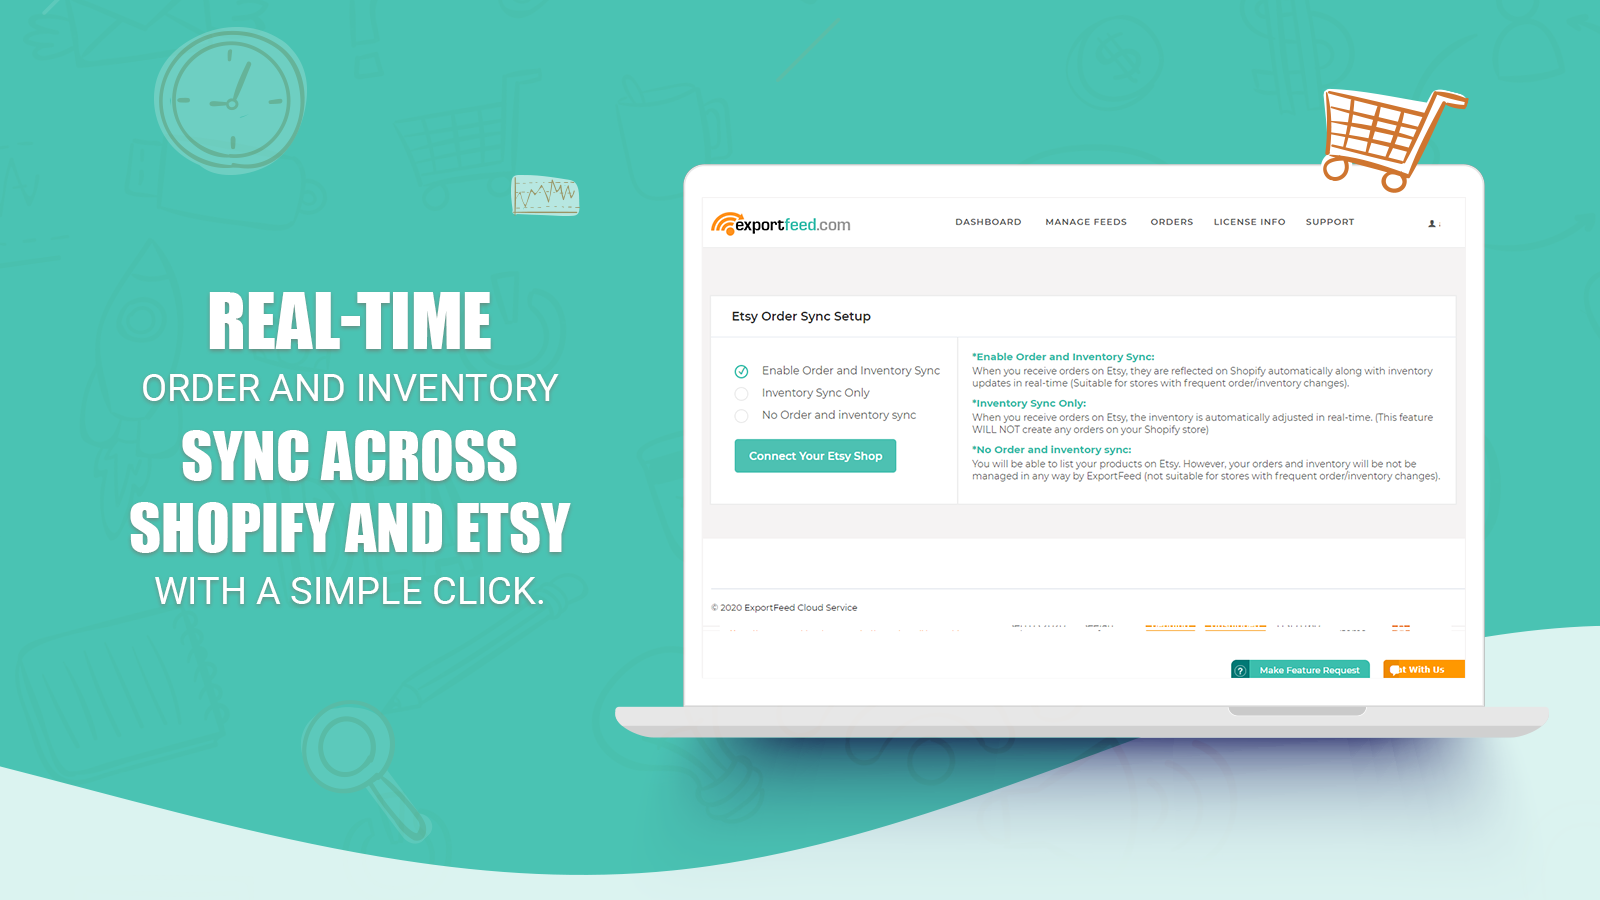 Etsy real-time order and inventory sync